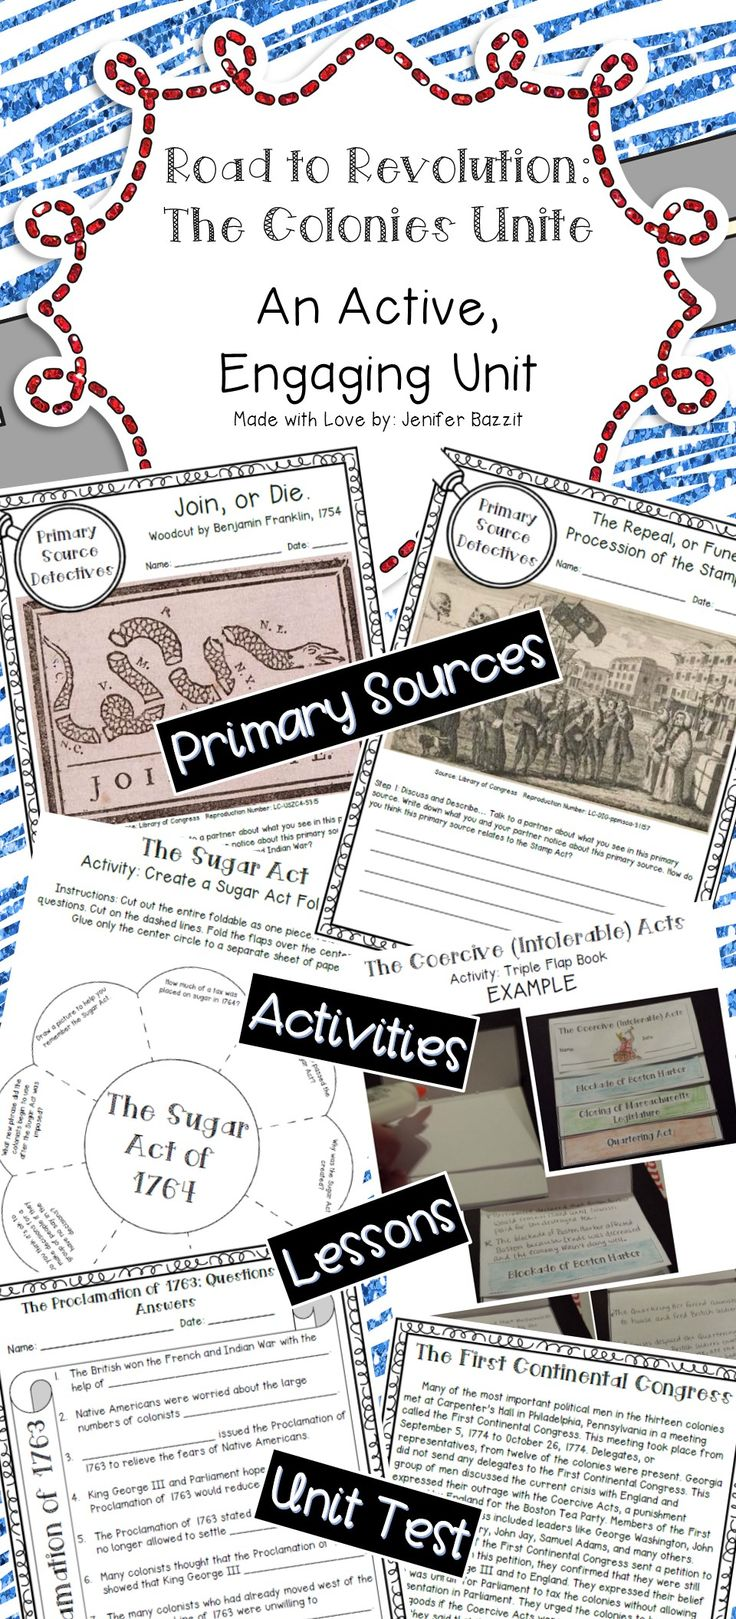 Are you looking for an engaging unit to use while teaching your students about the events leading to the American Revolution? You've found it! This unit contains a Road to Revolution wall display, lesson sheets, lesson activities, primary source analysis sheets, a relay review activity, and a unit test.